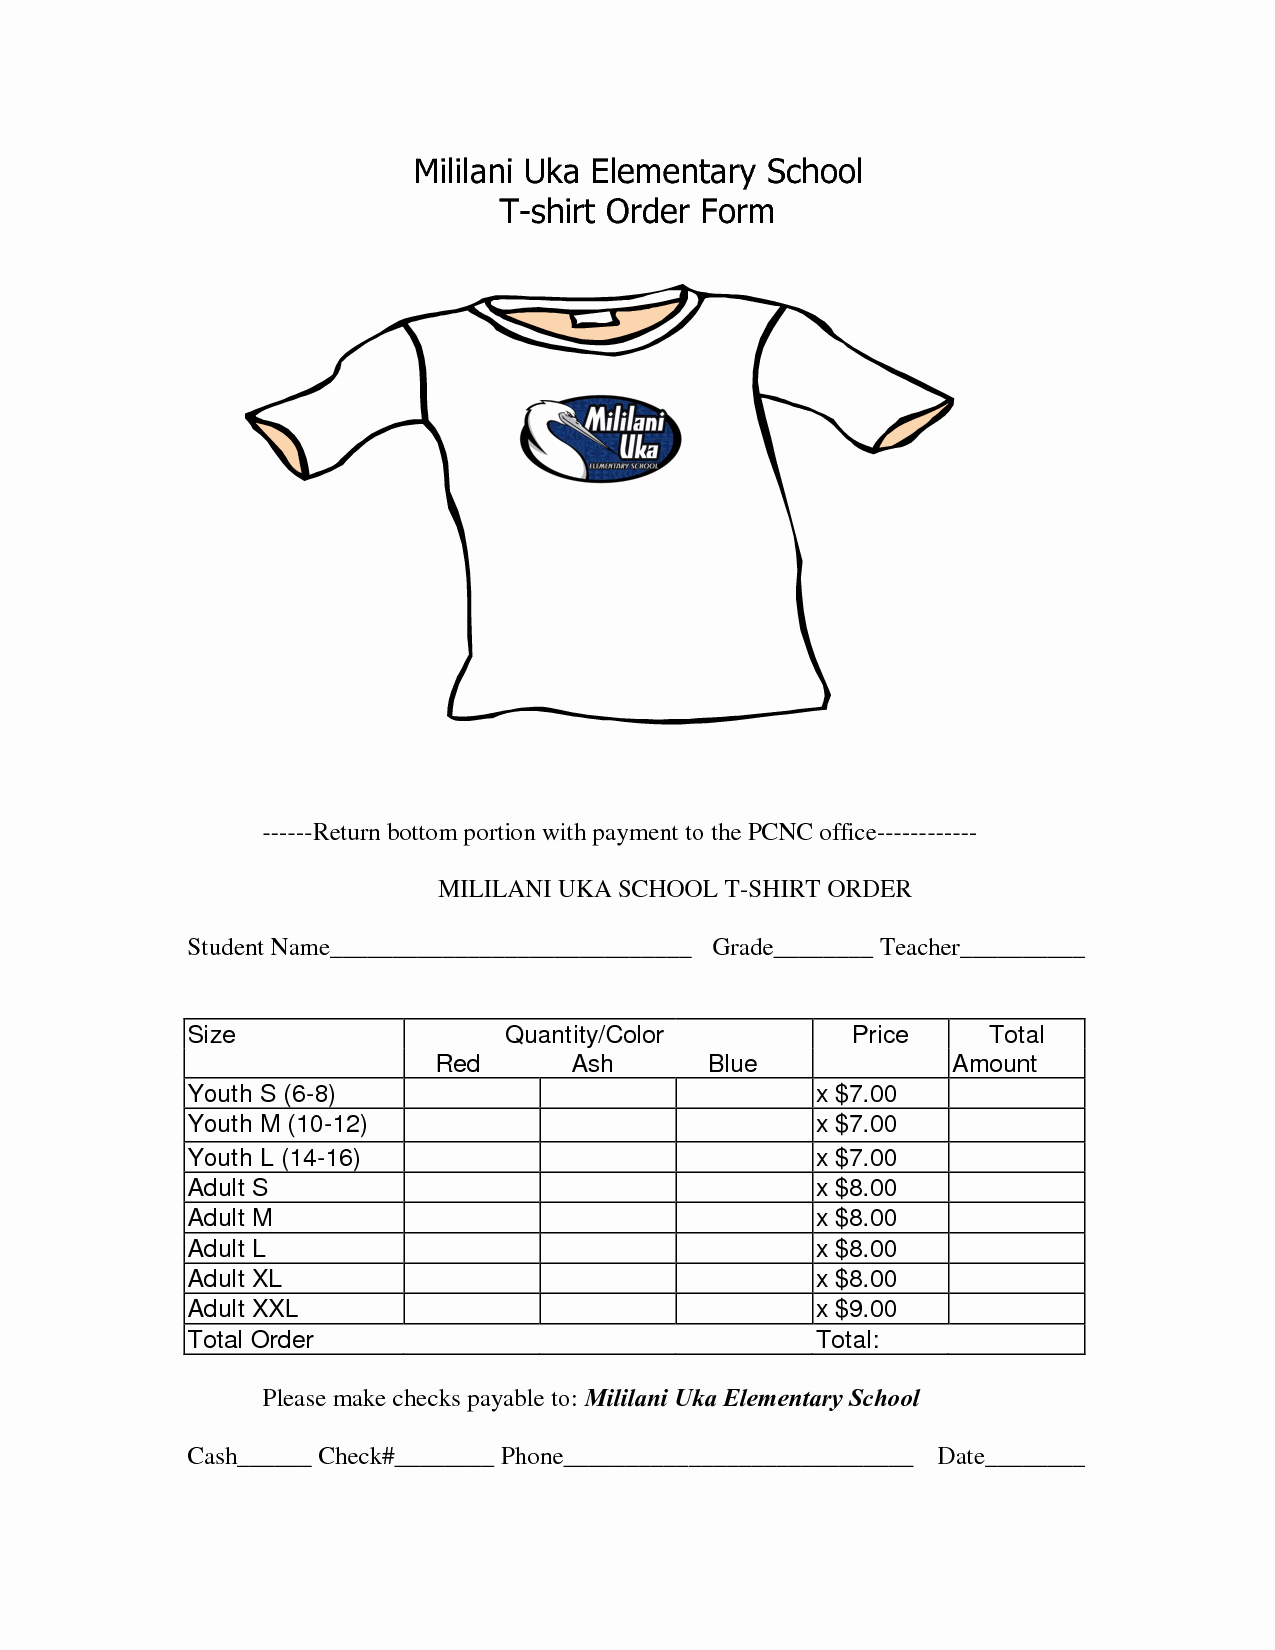 T Shirt form Template Beautiful School T Shirt order form Template Awana